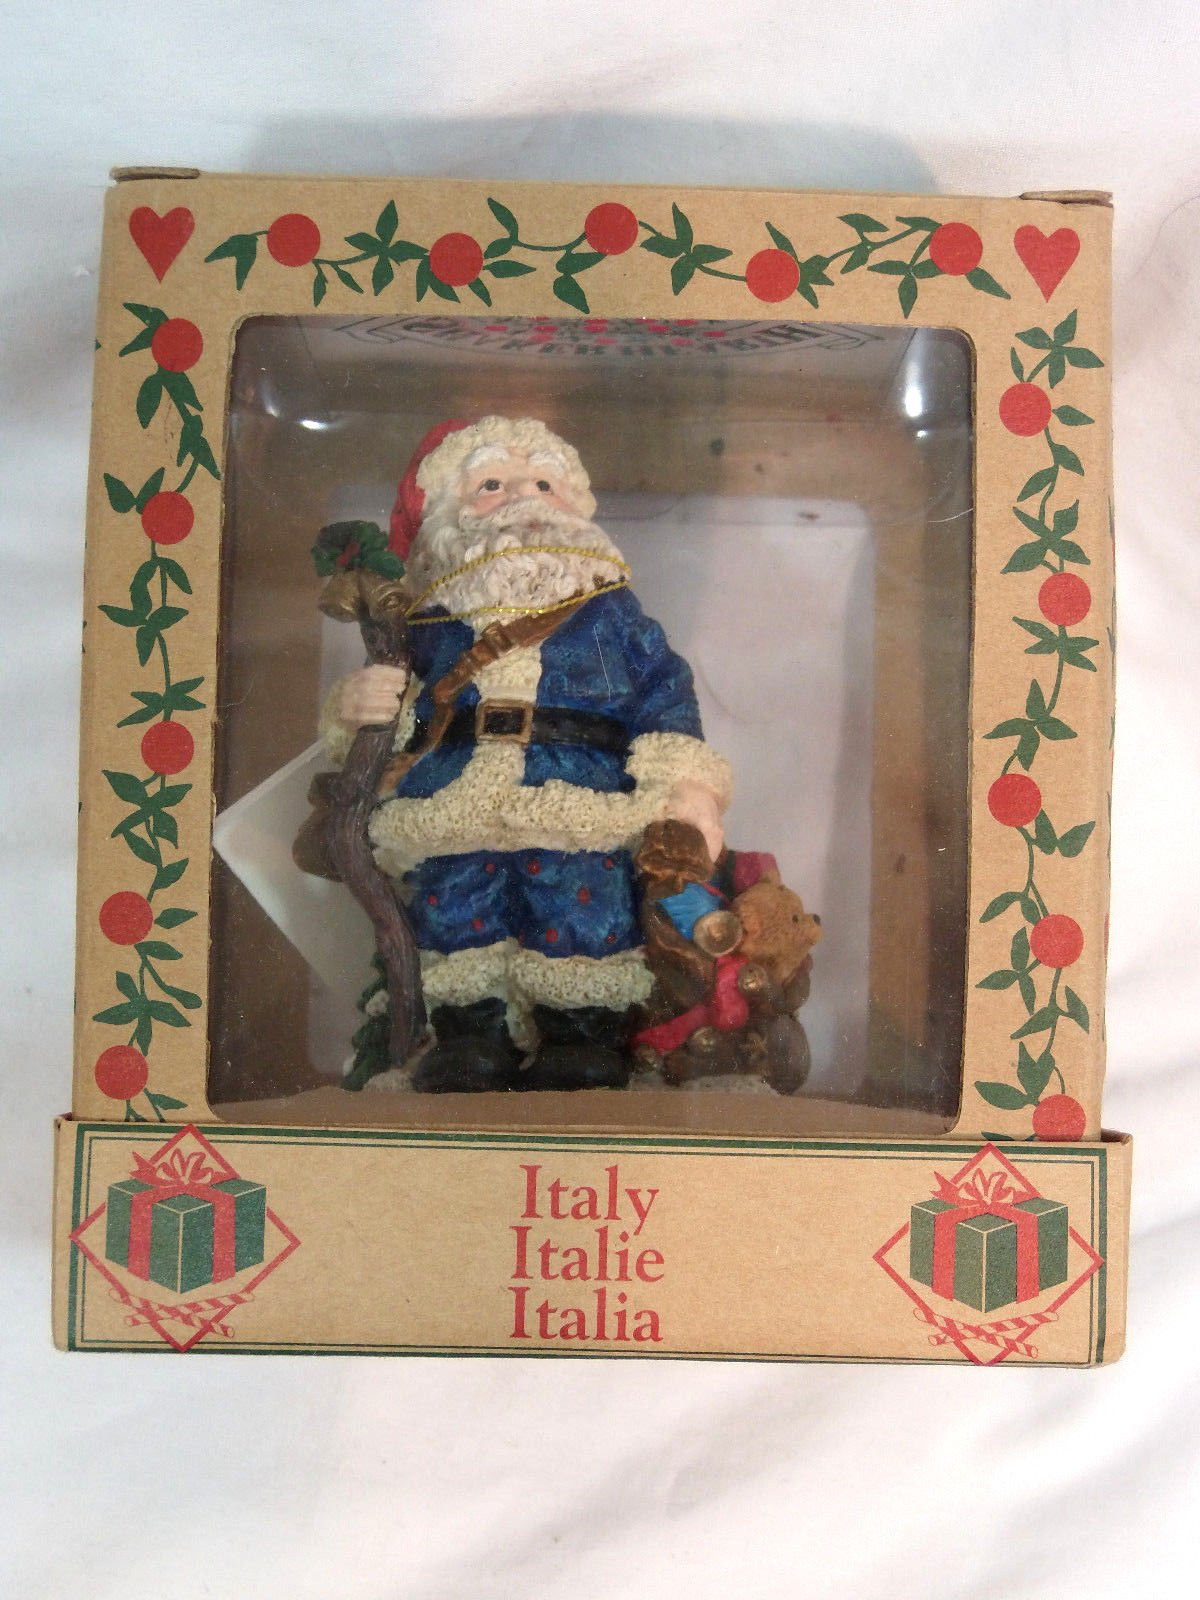 Shaker Hearth Christmas Cookie Stamp Press Santa Claus ITALY Around World Wilton by Shaker Hearth (Image #1)